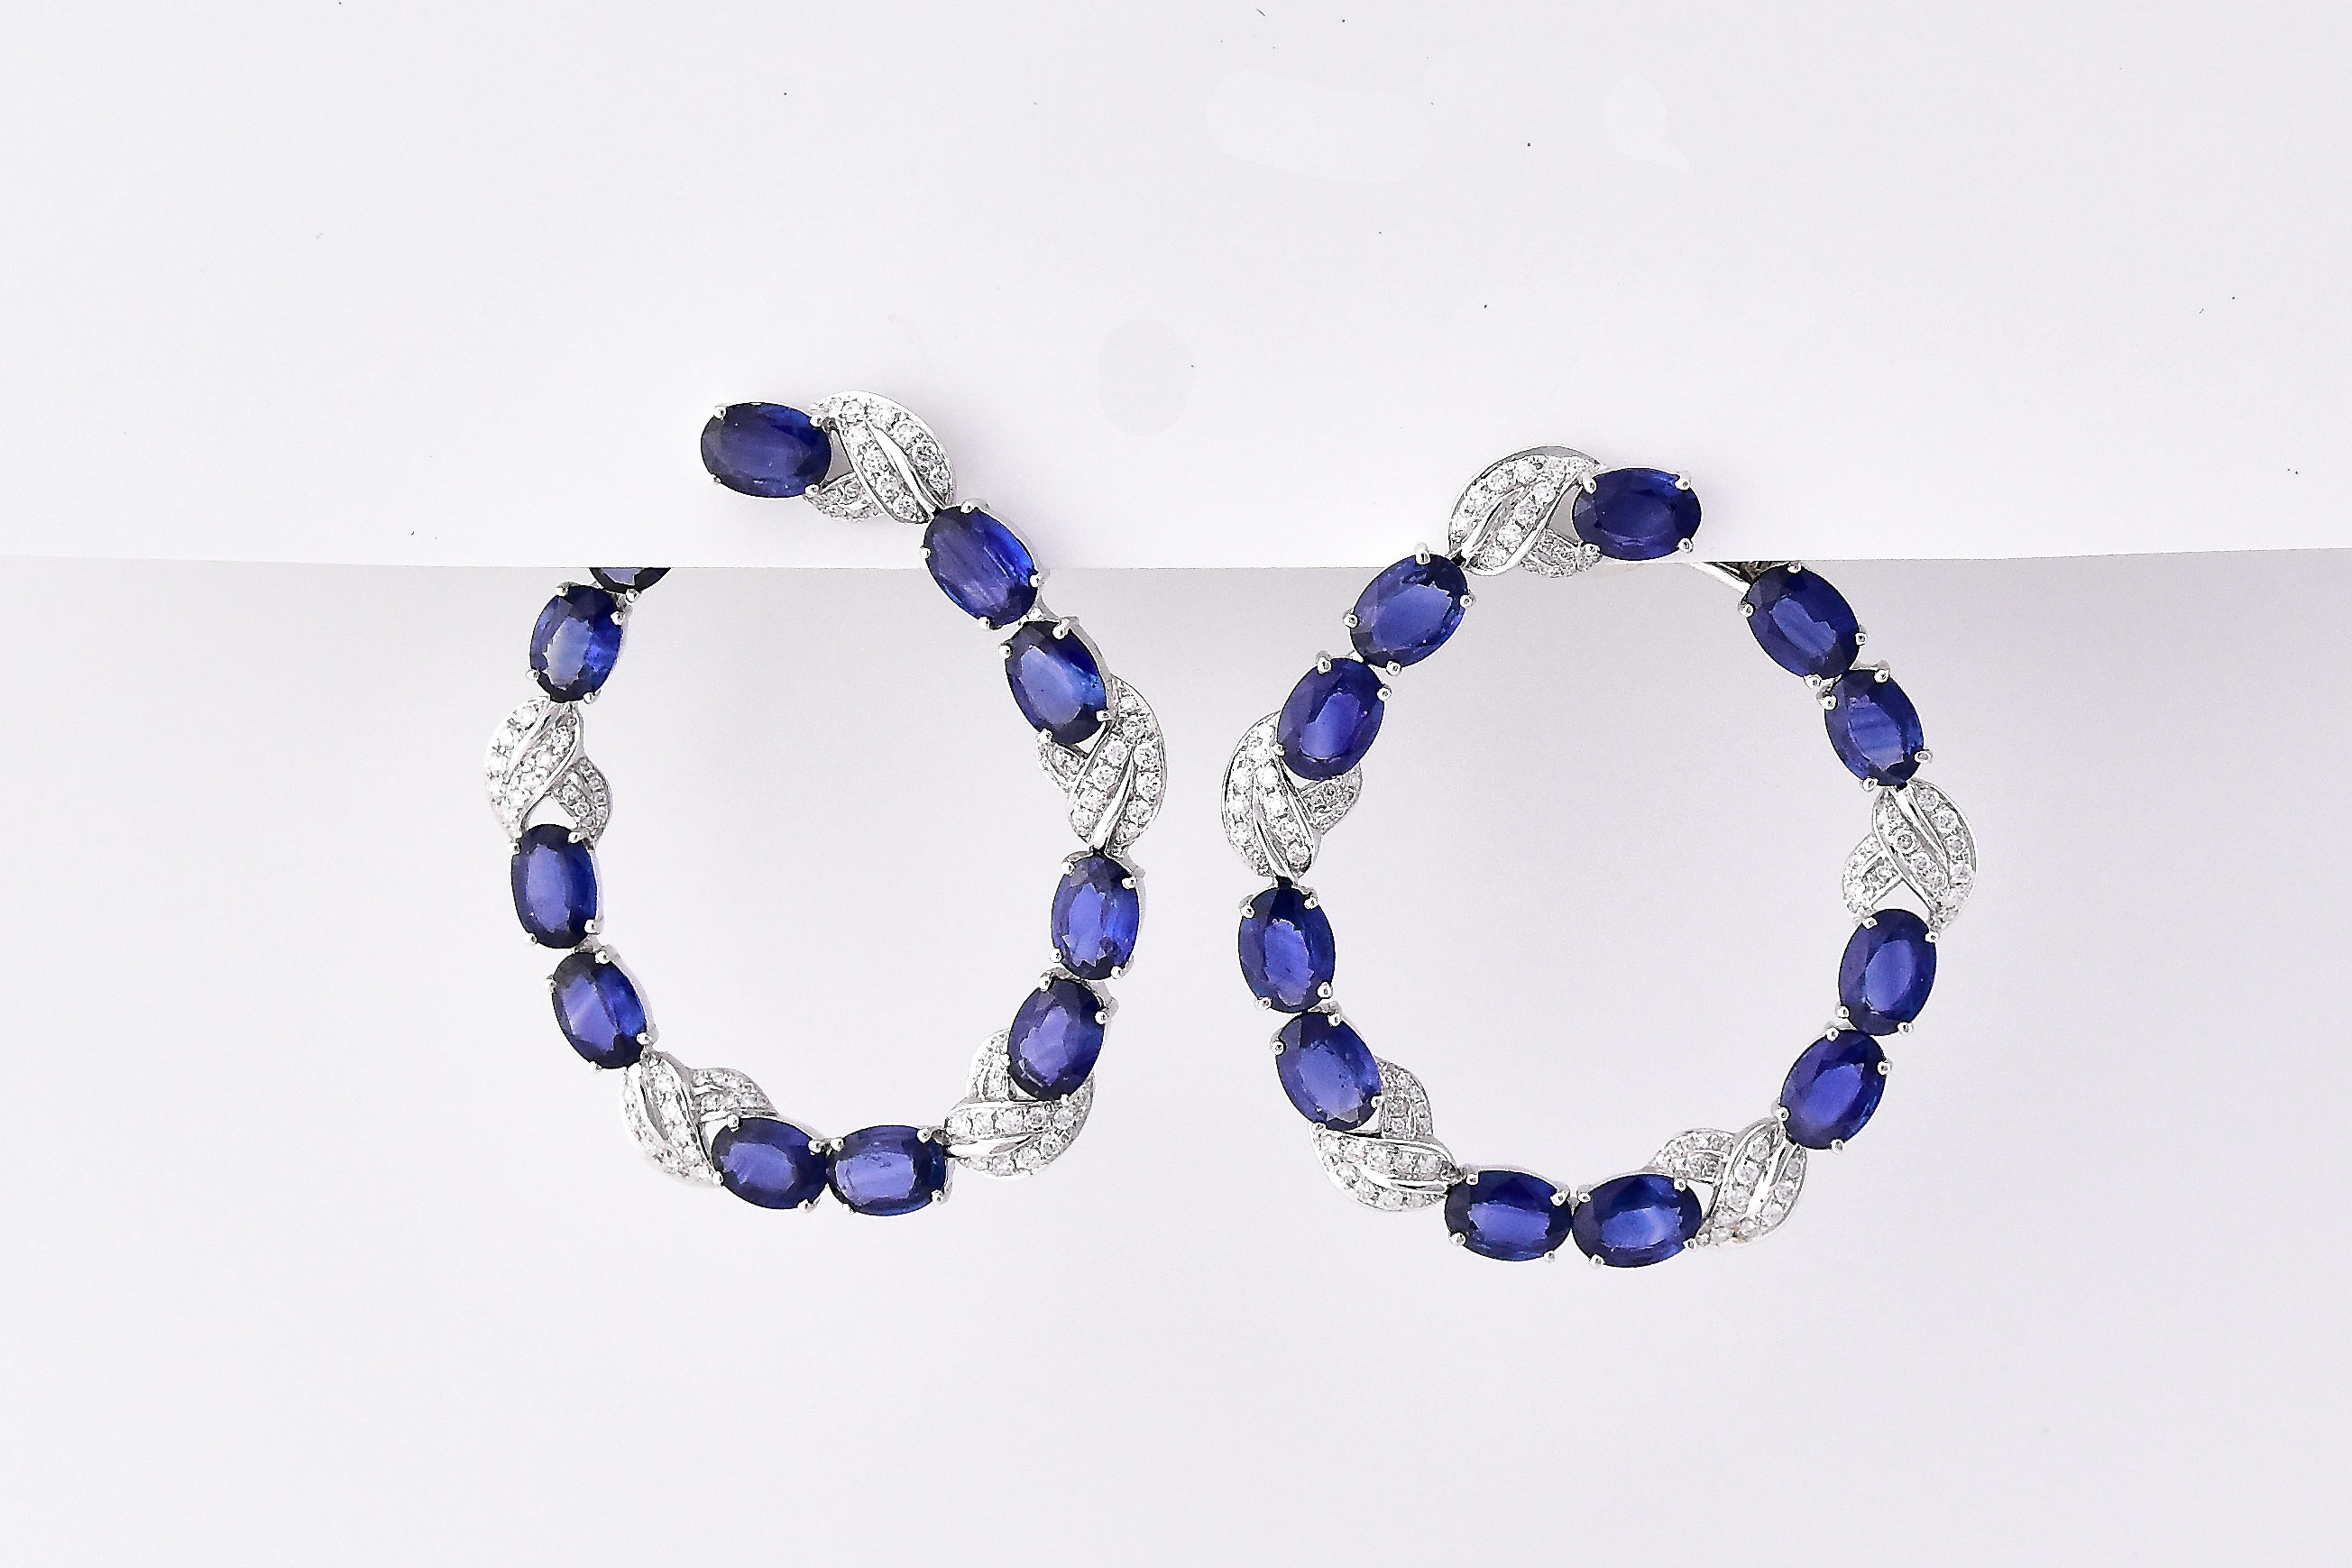 Almost 18.0 Carats Total Weight Sapphire Earrings